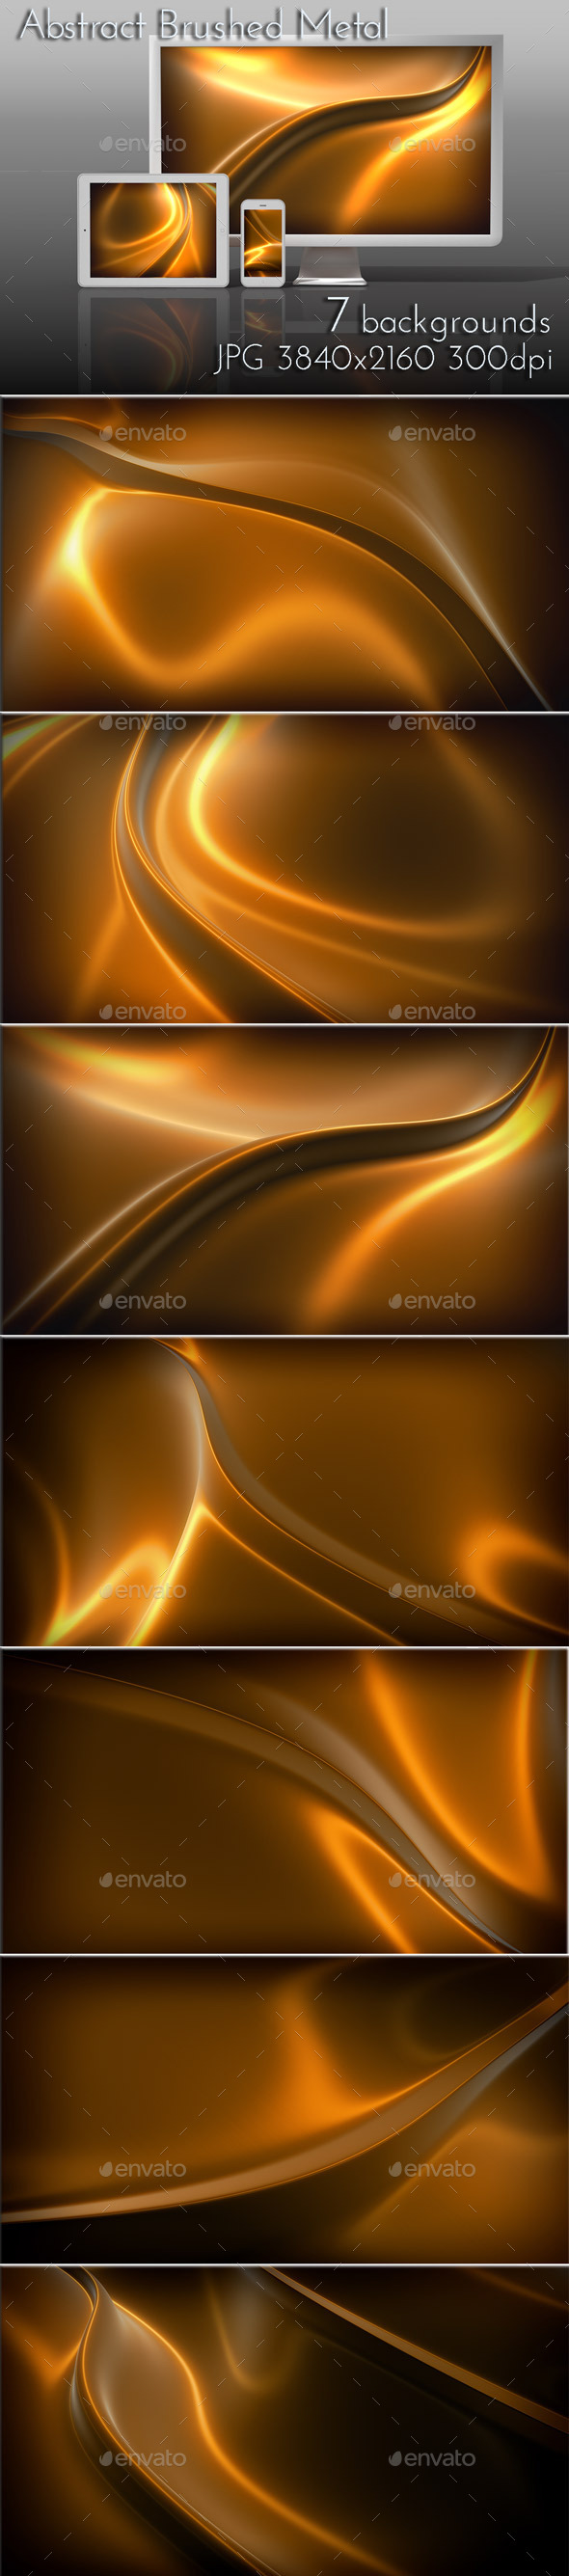 Bronze Metal Brushed Surface - 3D Backgrounds